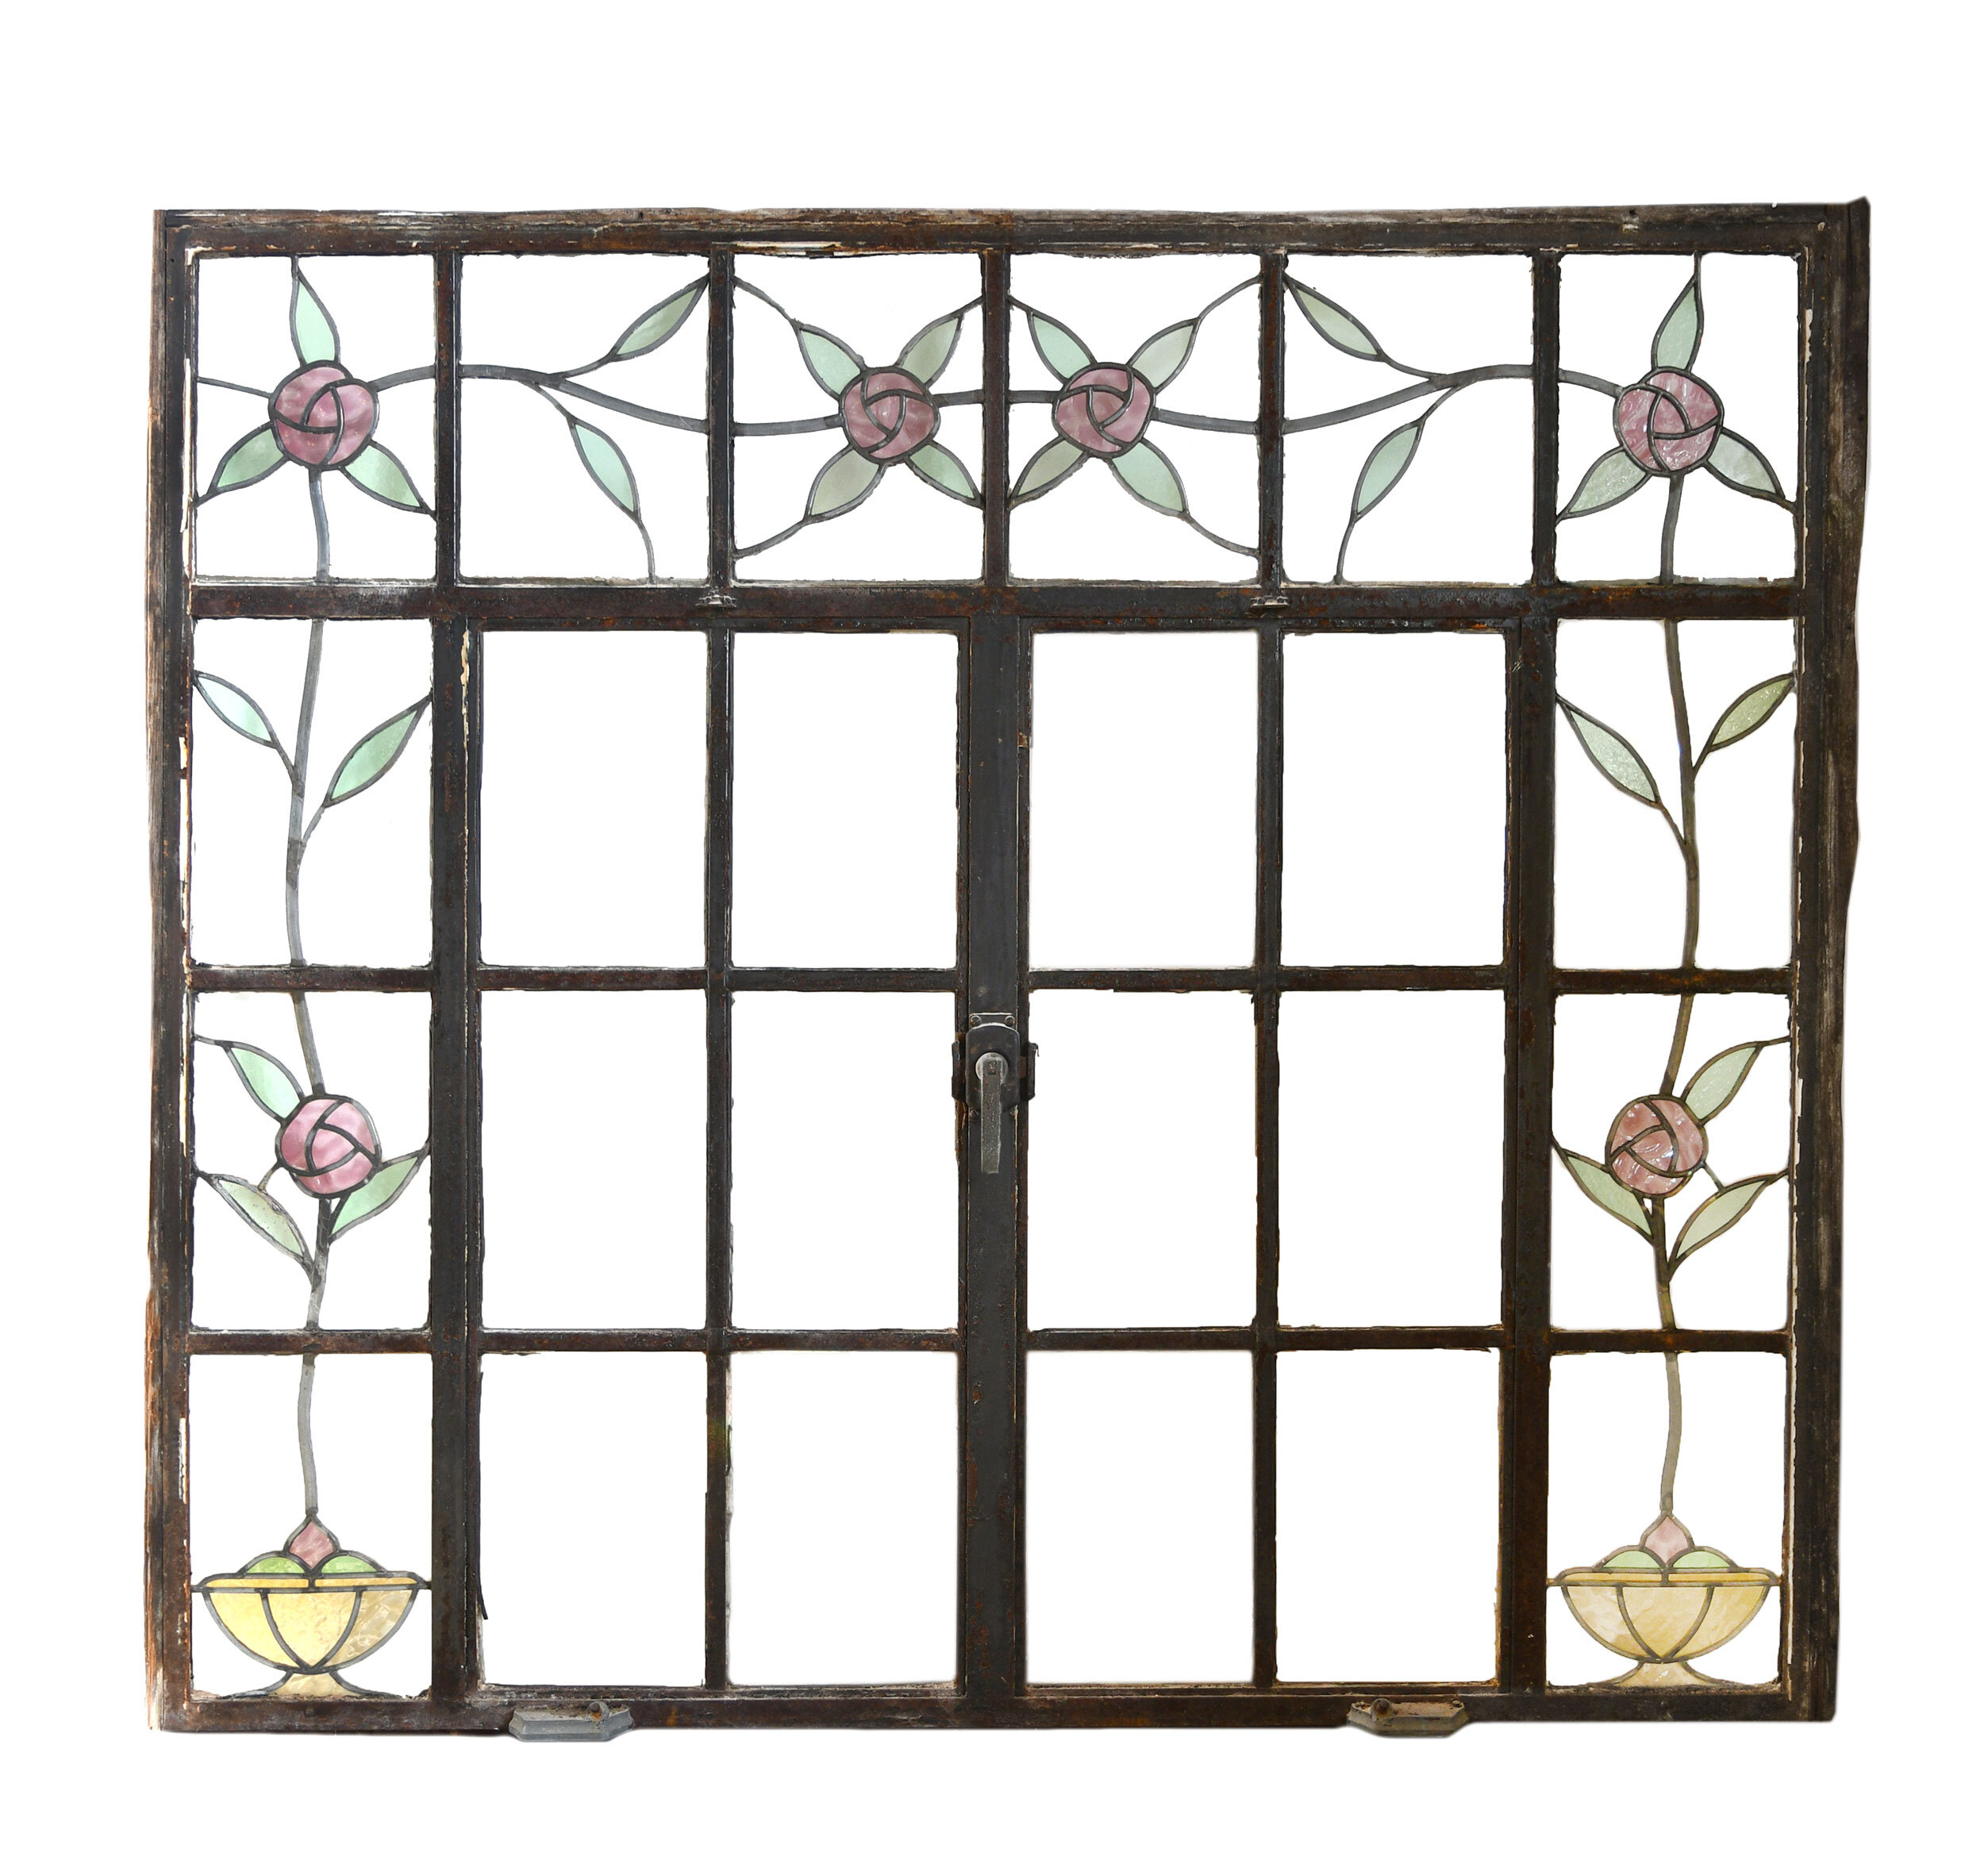 Large casement window with stained glass roses - 2 available